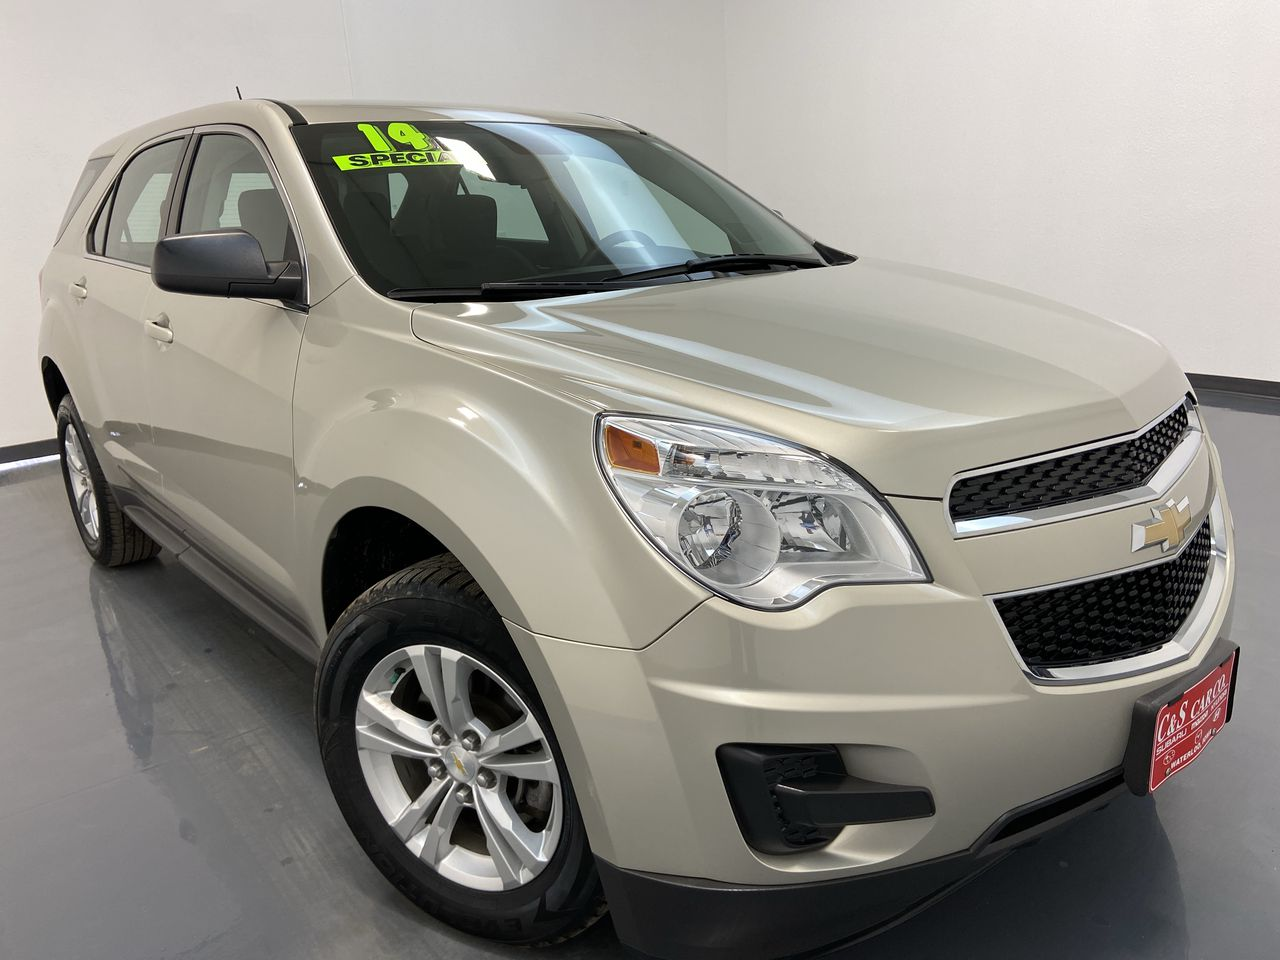 2014 Chevrolet Equinox  - C & S Car Company